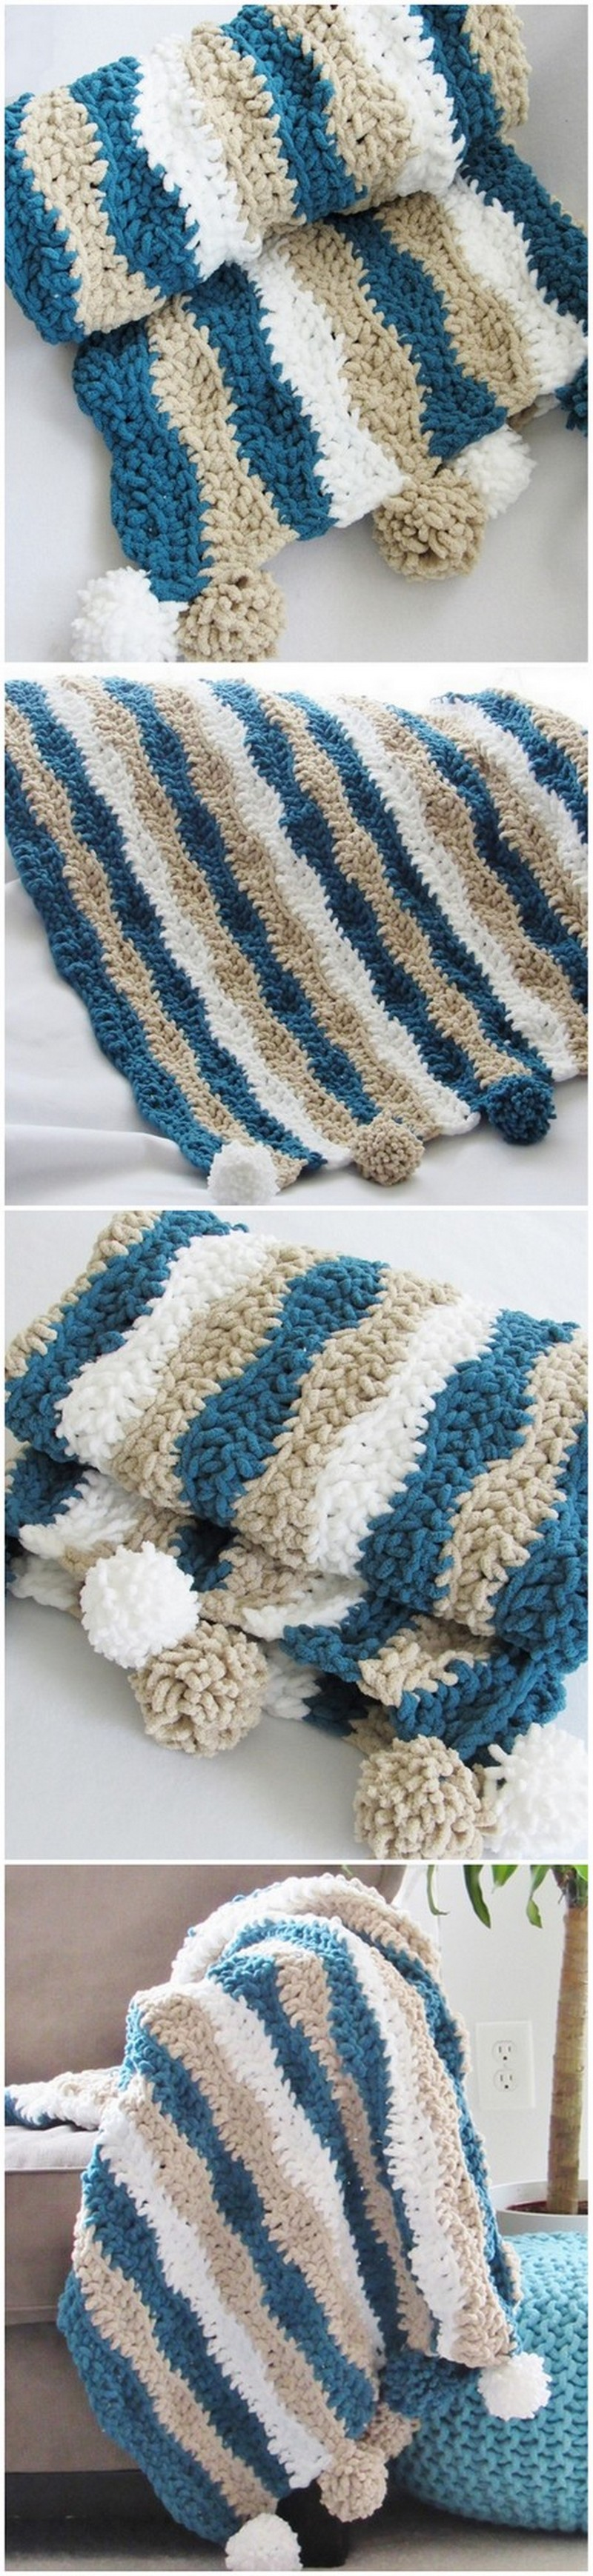 Easy Crochet Blanket Pattern (20)